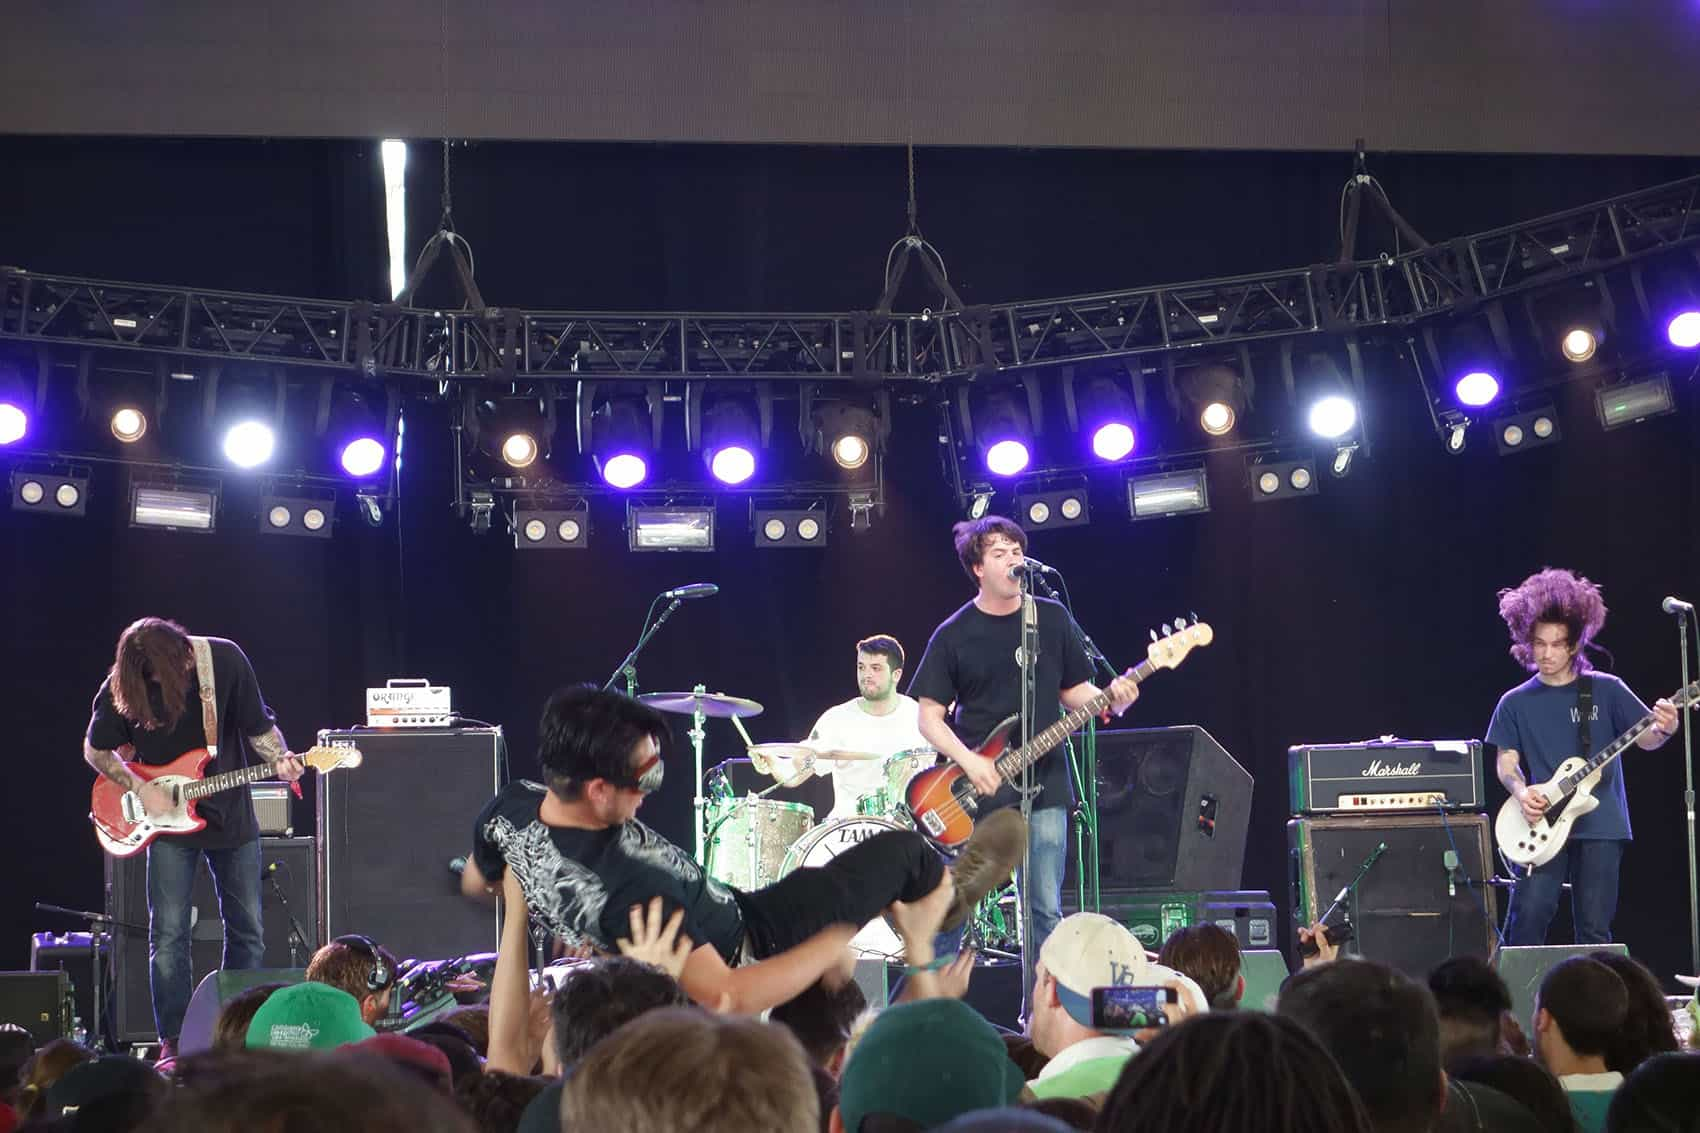 Title Fight performing in a concert.